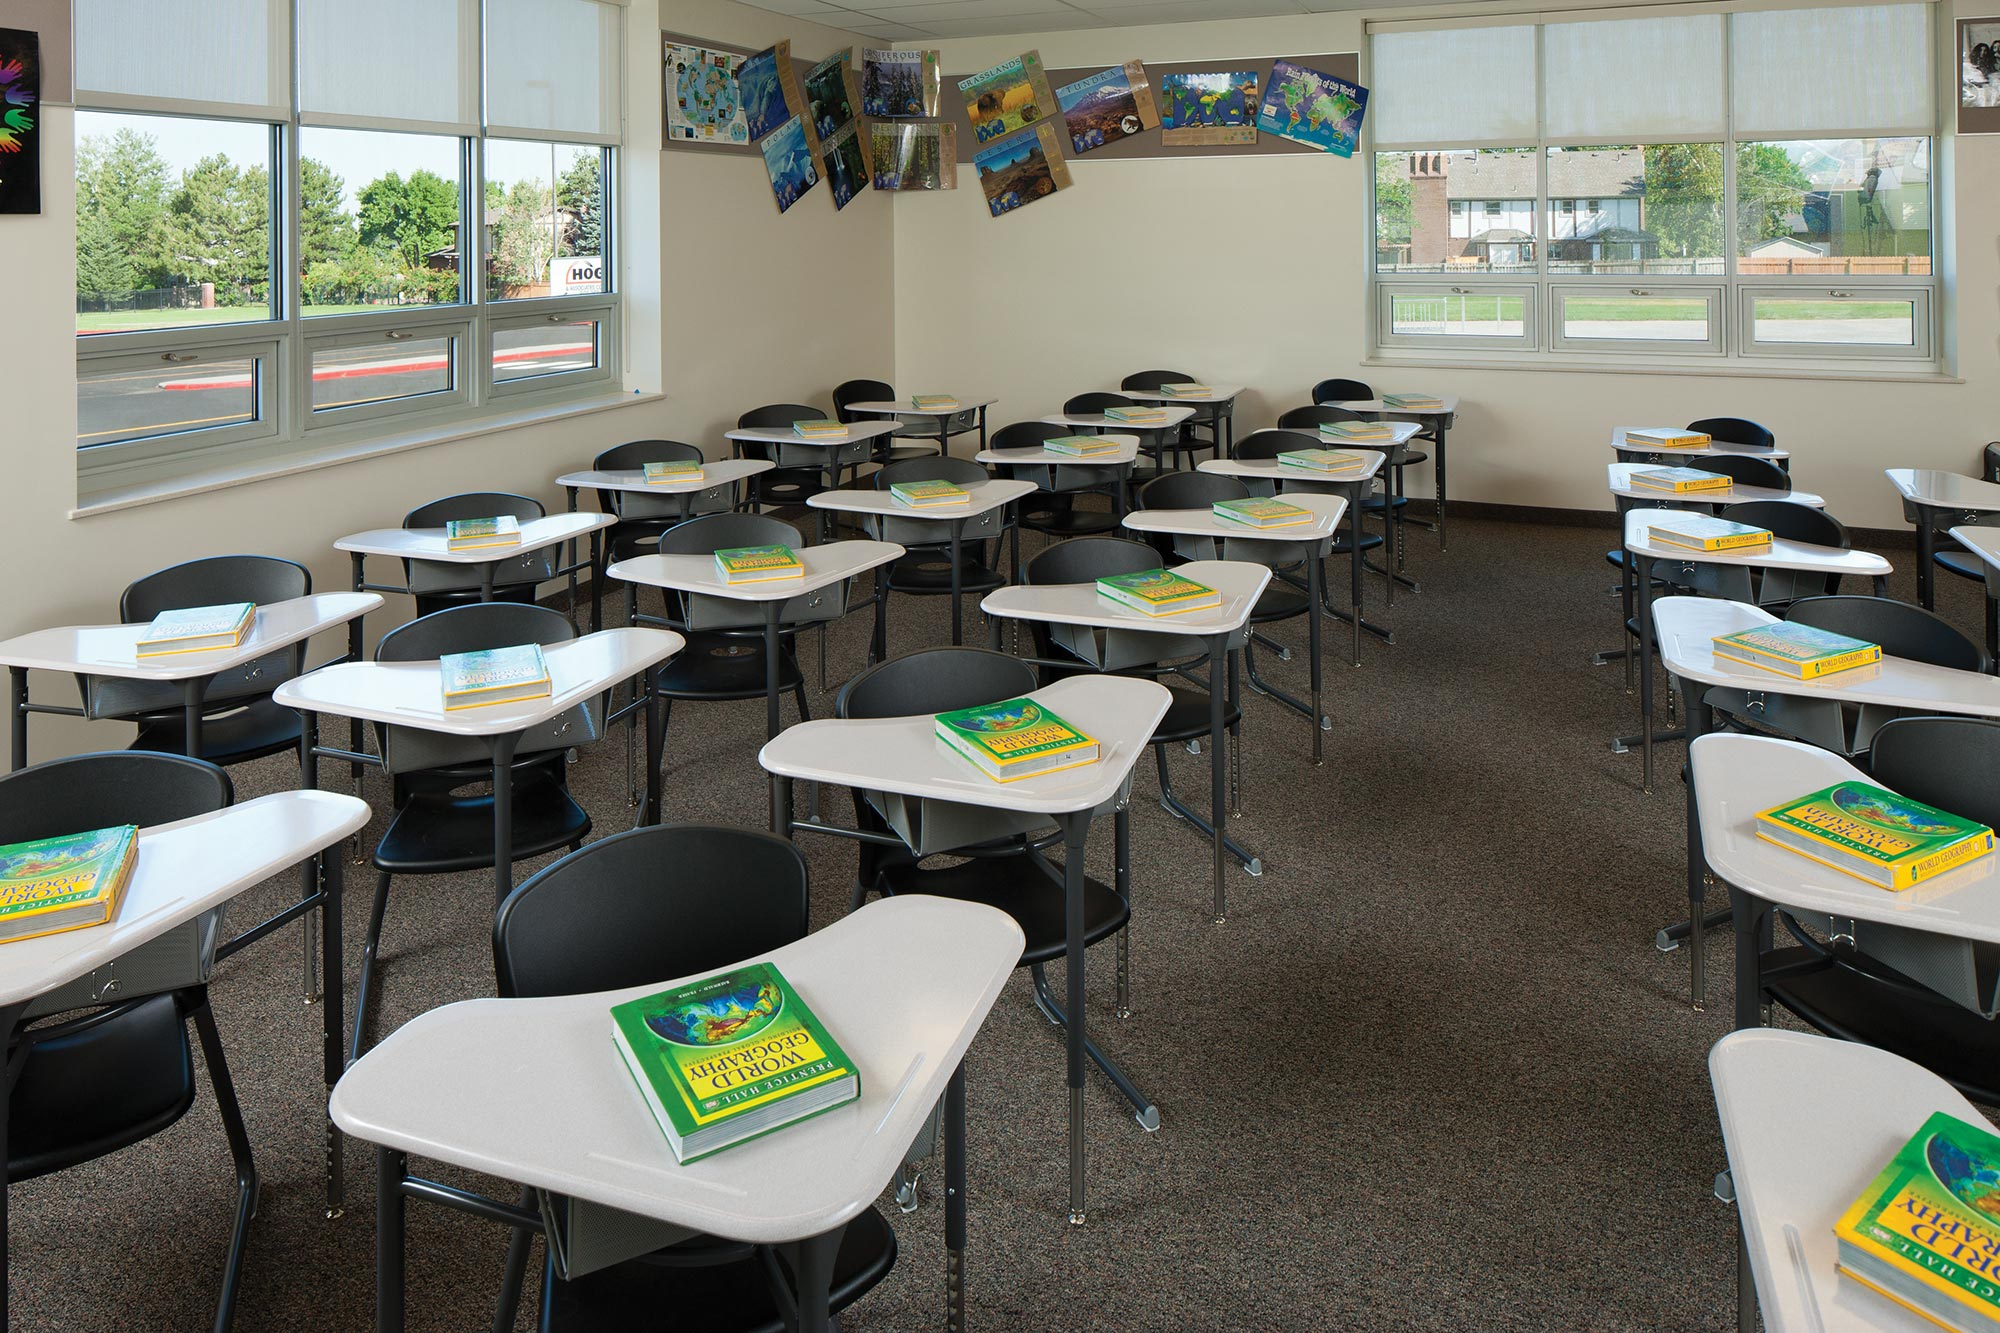 Albion-Middle-School-Interior-Classroom